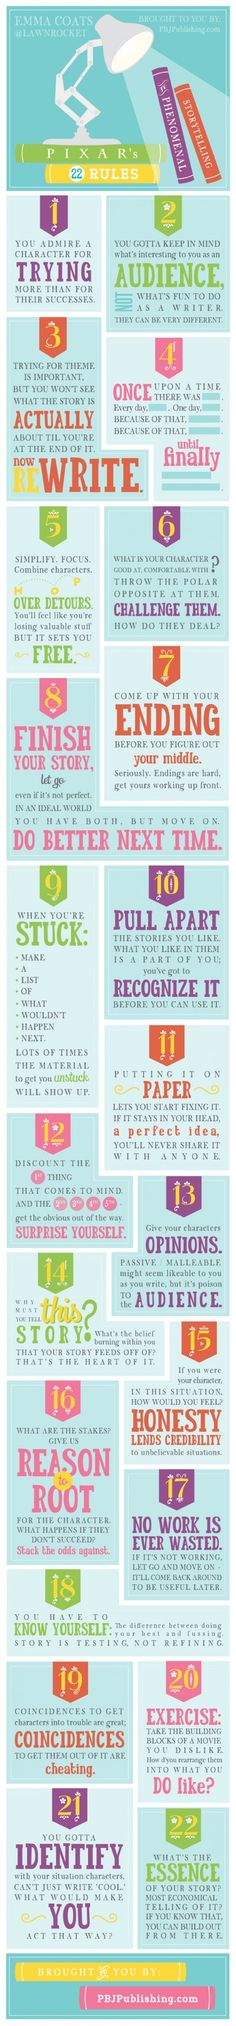 Pixar's 22 rules to phenomenal storytelling. I want this in a huge poster form for my classroom!